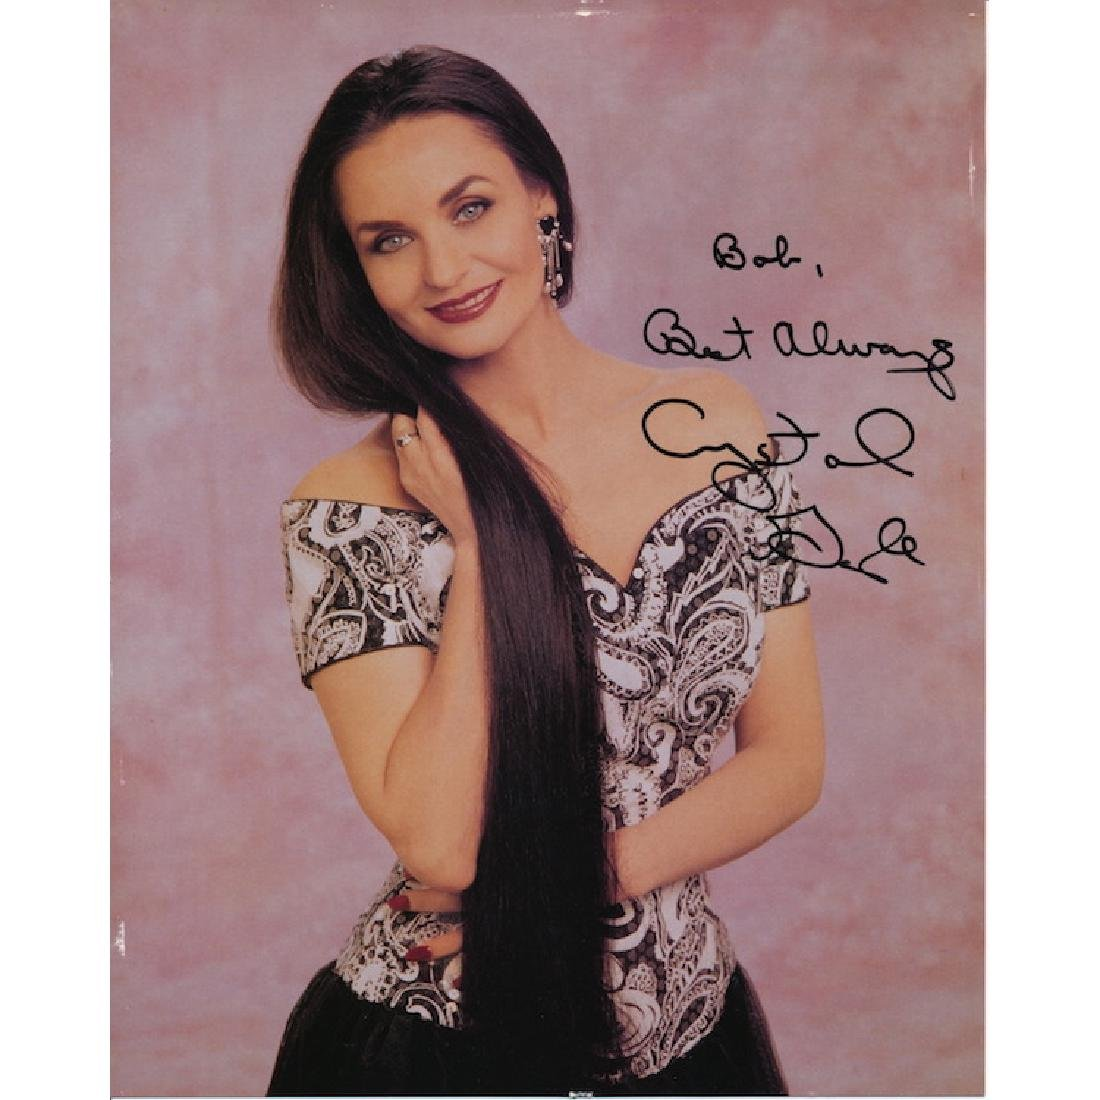 Crystal Gayle Autographed Photograph